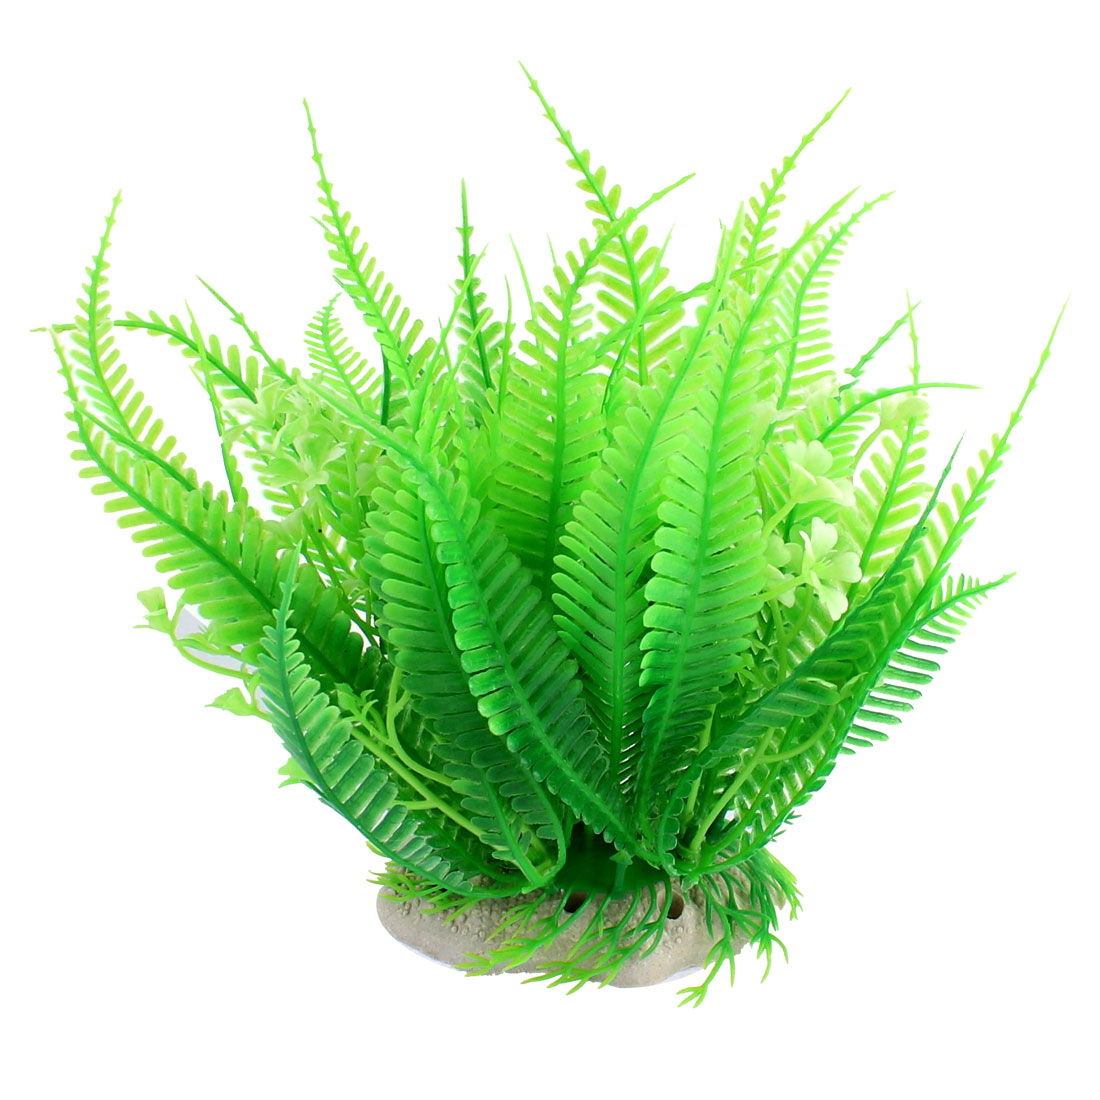 Aquarium Fishbowl Plastic Imitated Water Plant Grass Decoration Green